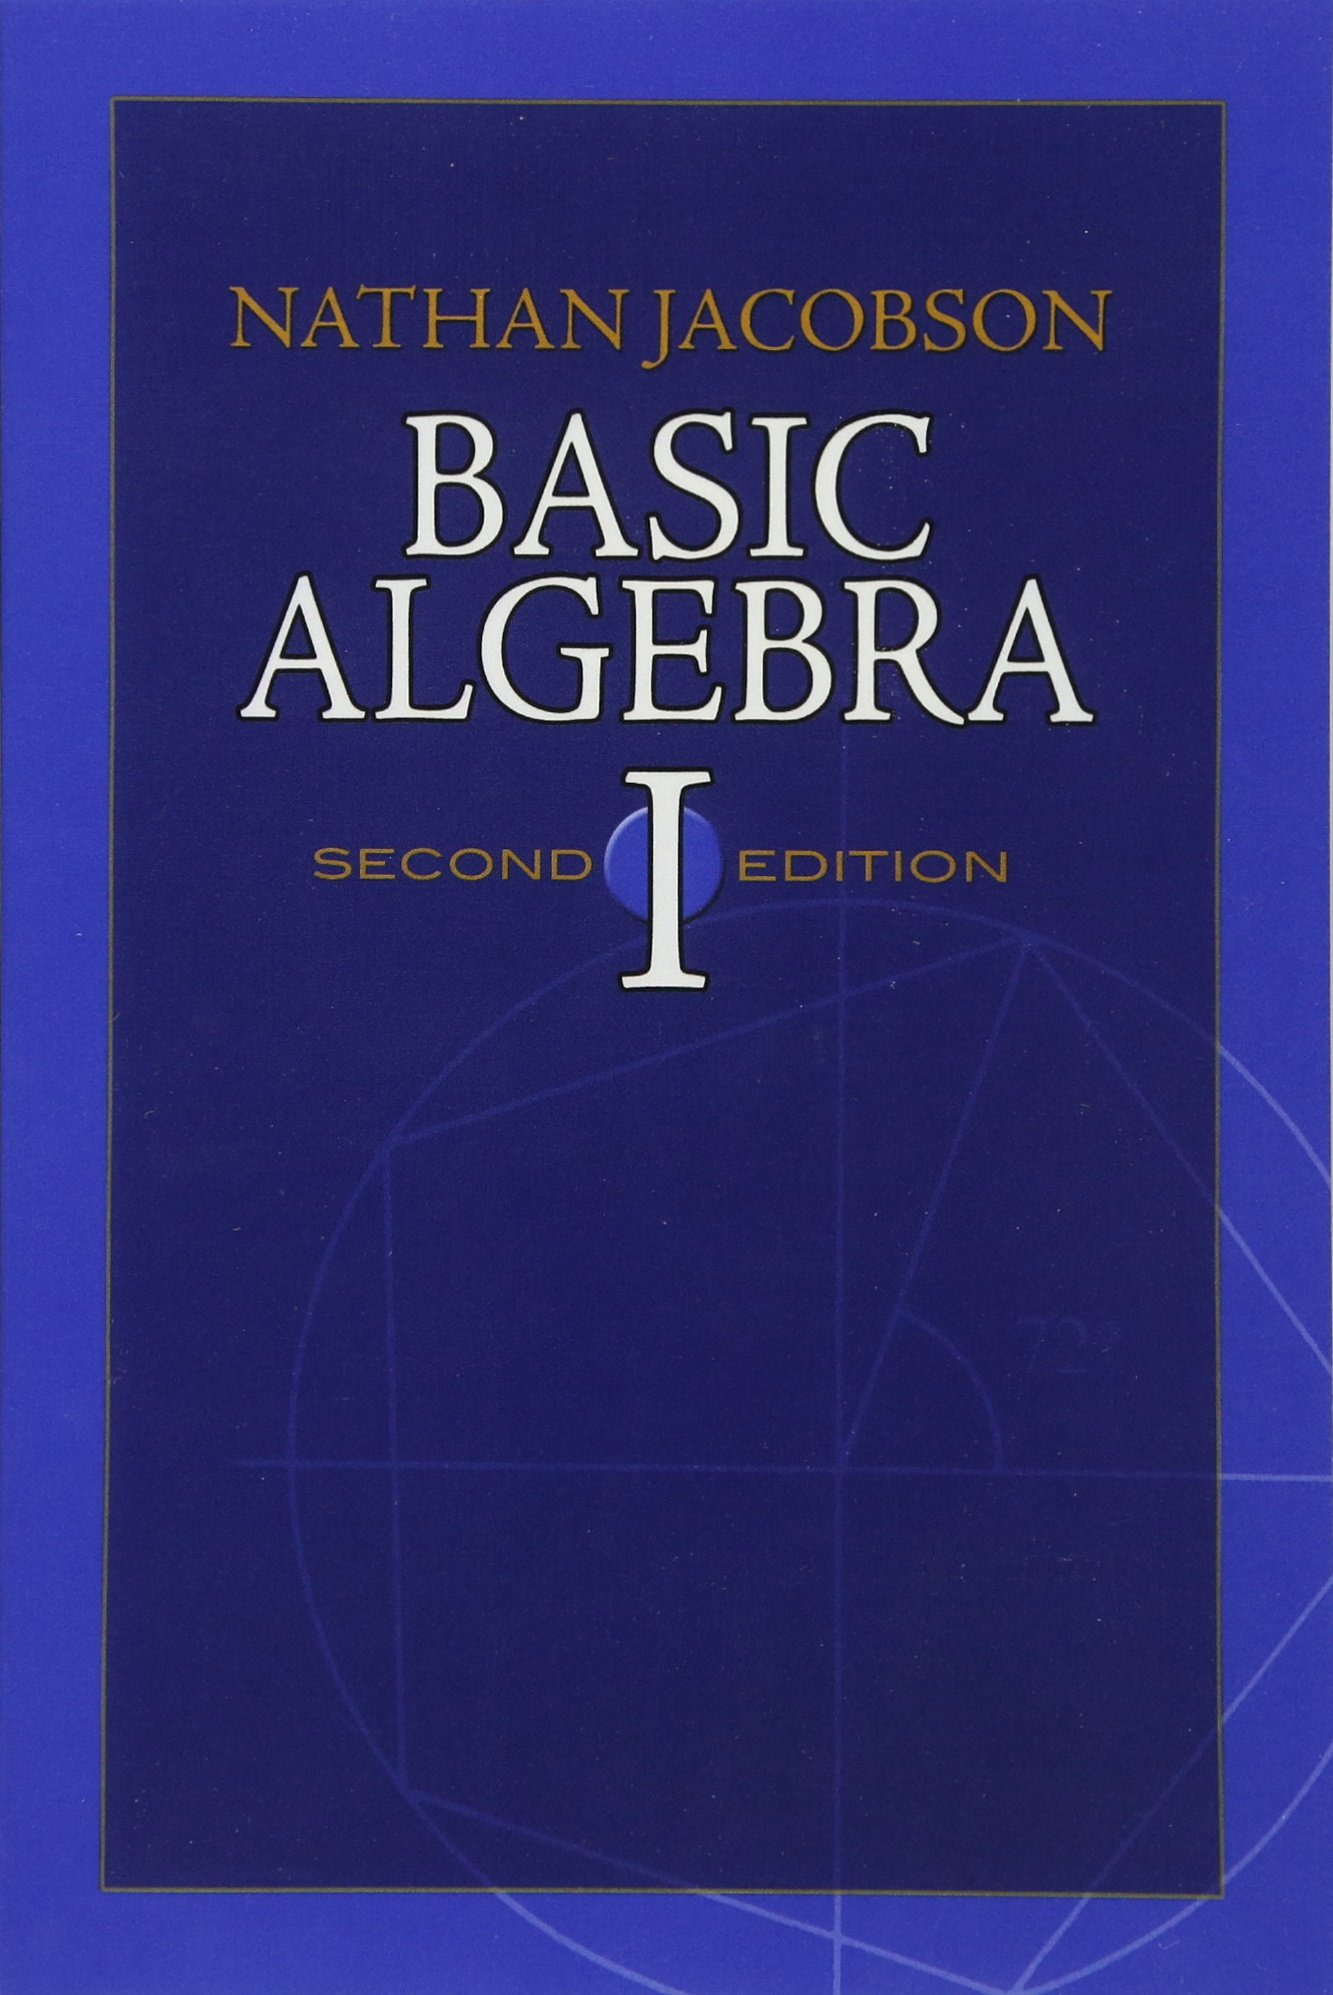 Amazon | Basic Algebra I: Seco...